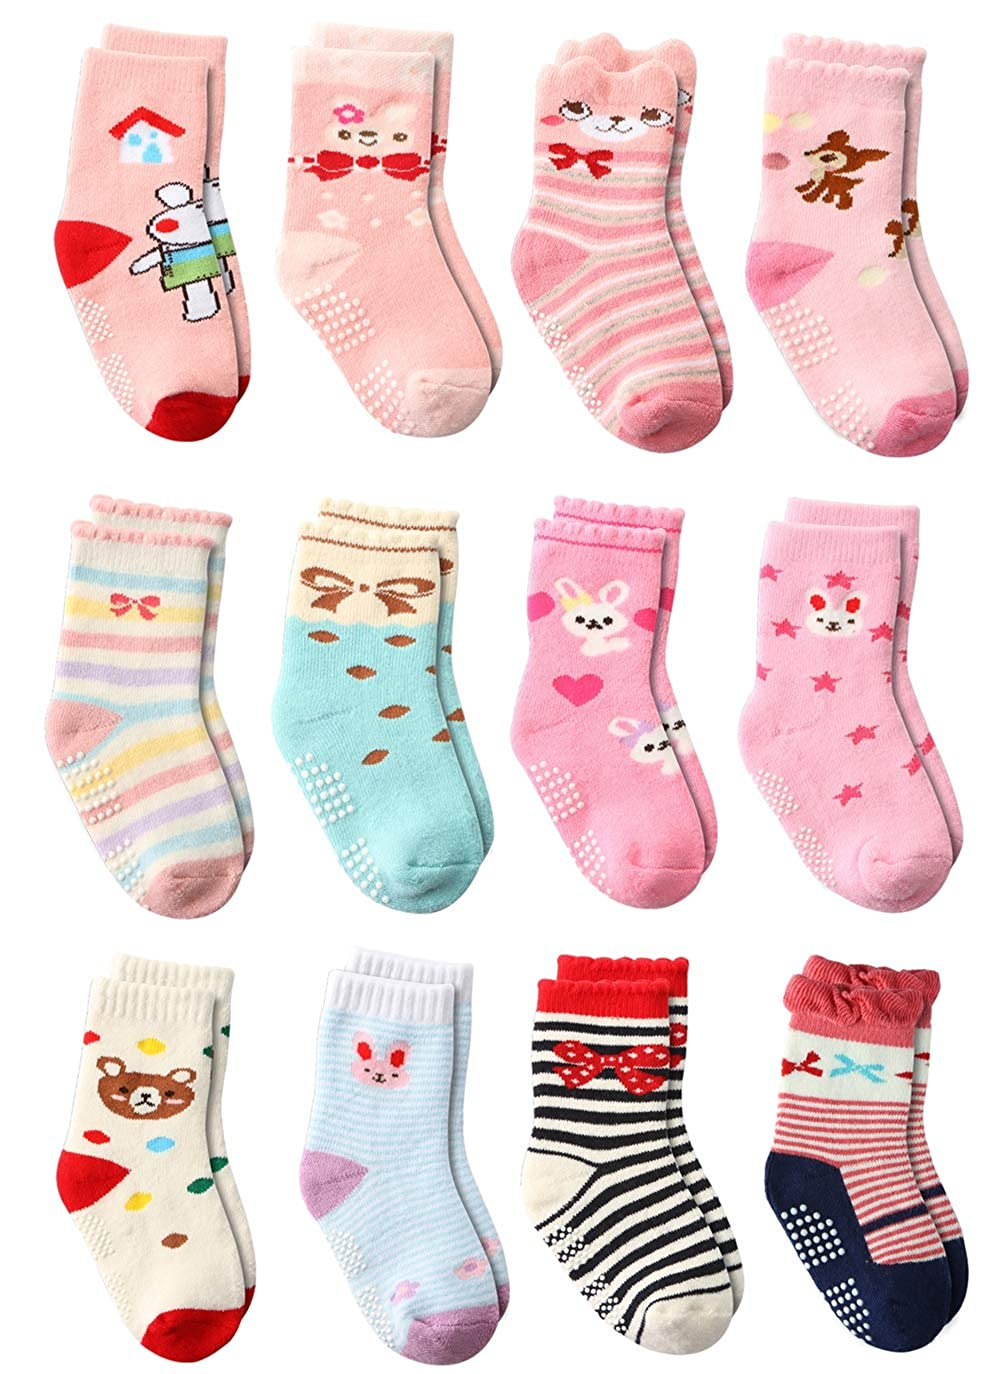 12 Pairs Infant Newborn Thick Cotton Socks, Baby Girls Toddler Girl Non Skid Socks with Grips Little Girl Slipper Socks